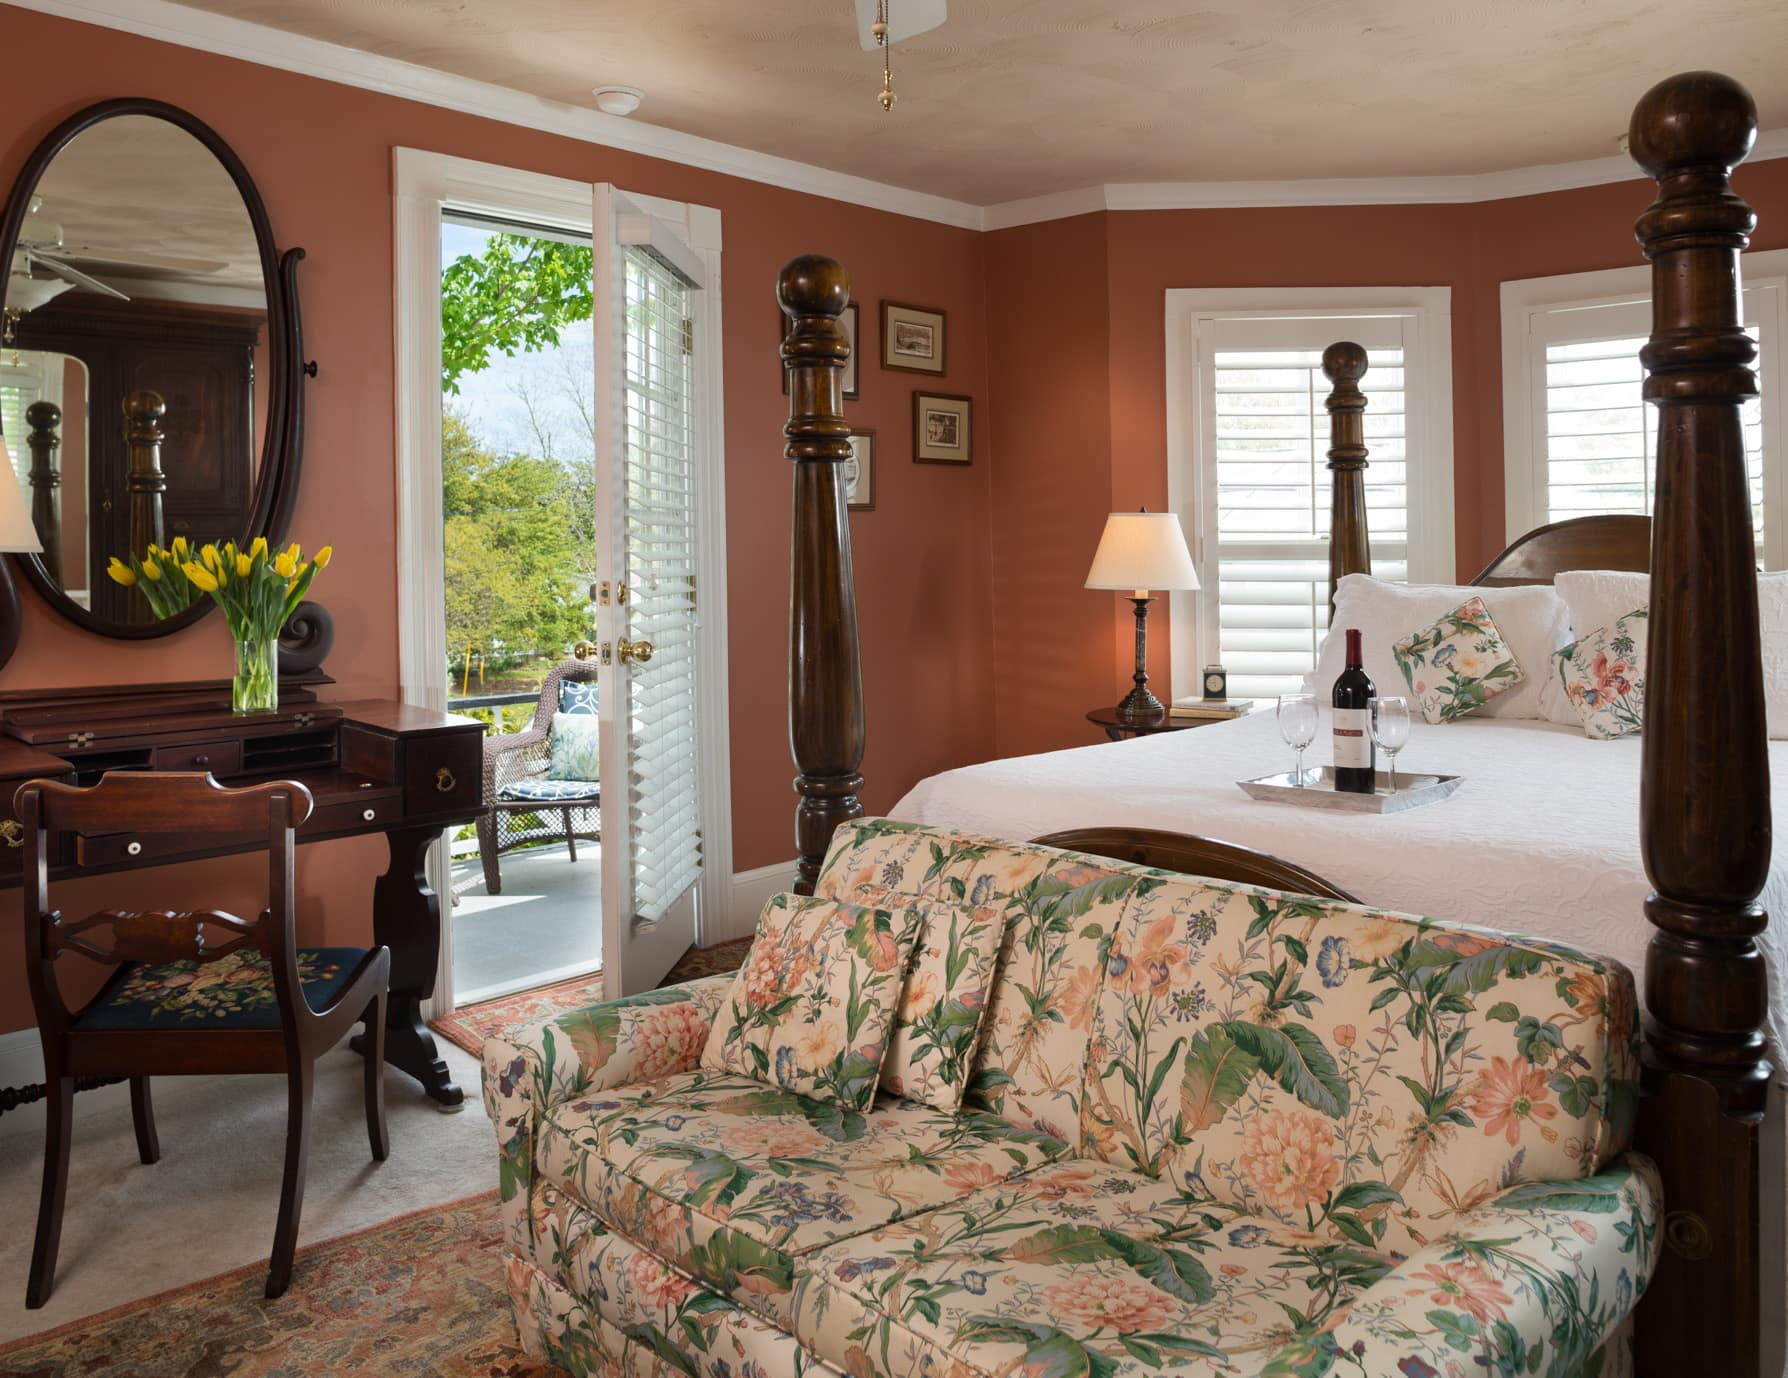 Four Poster King Bed at Our B&B in Manteo, NC